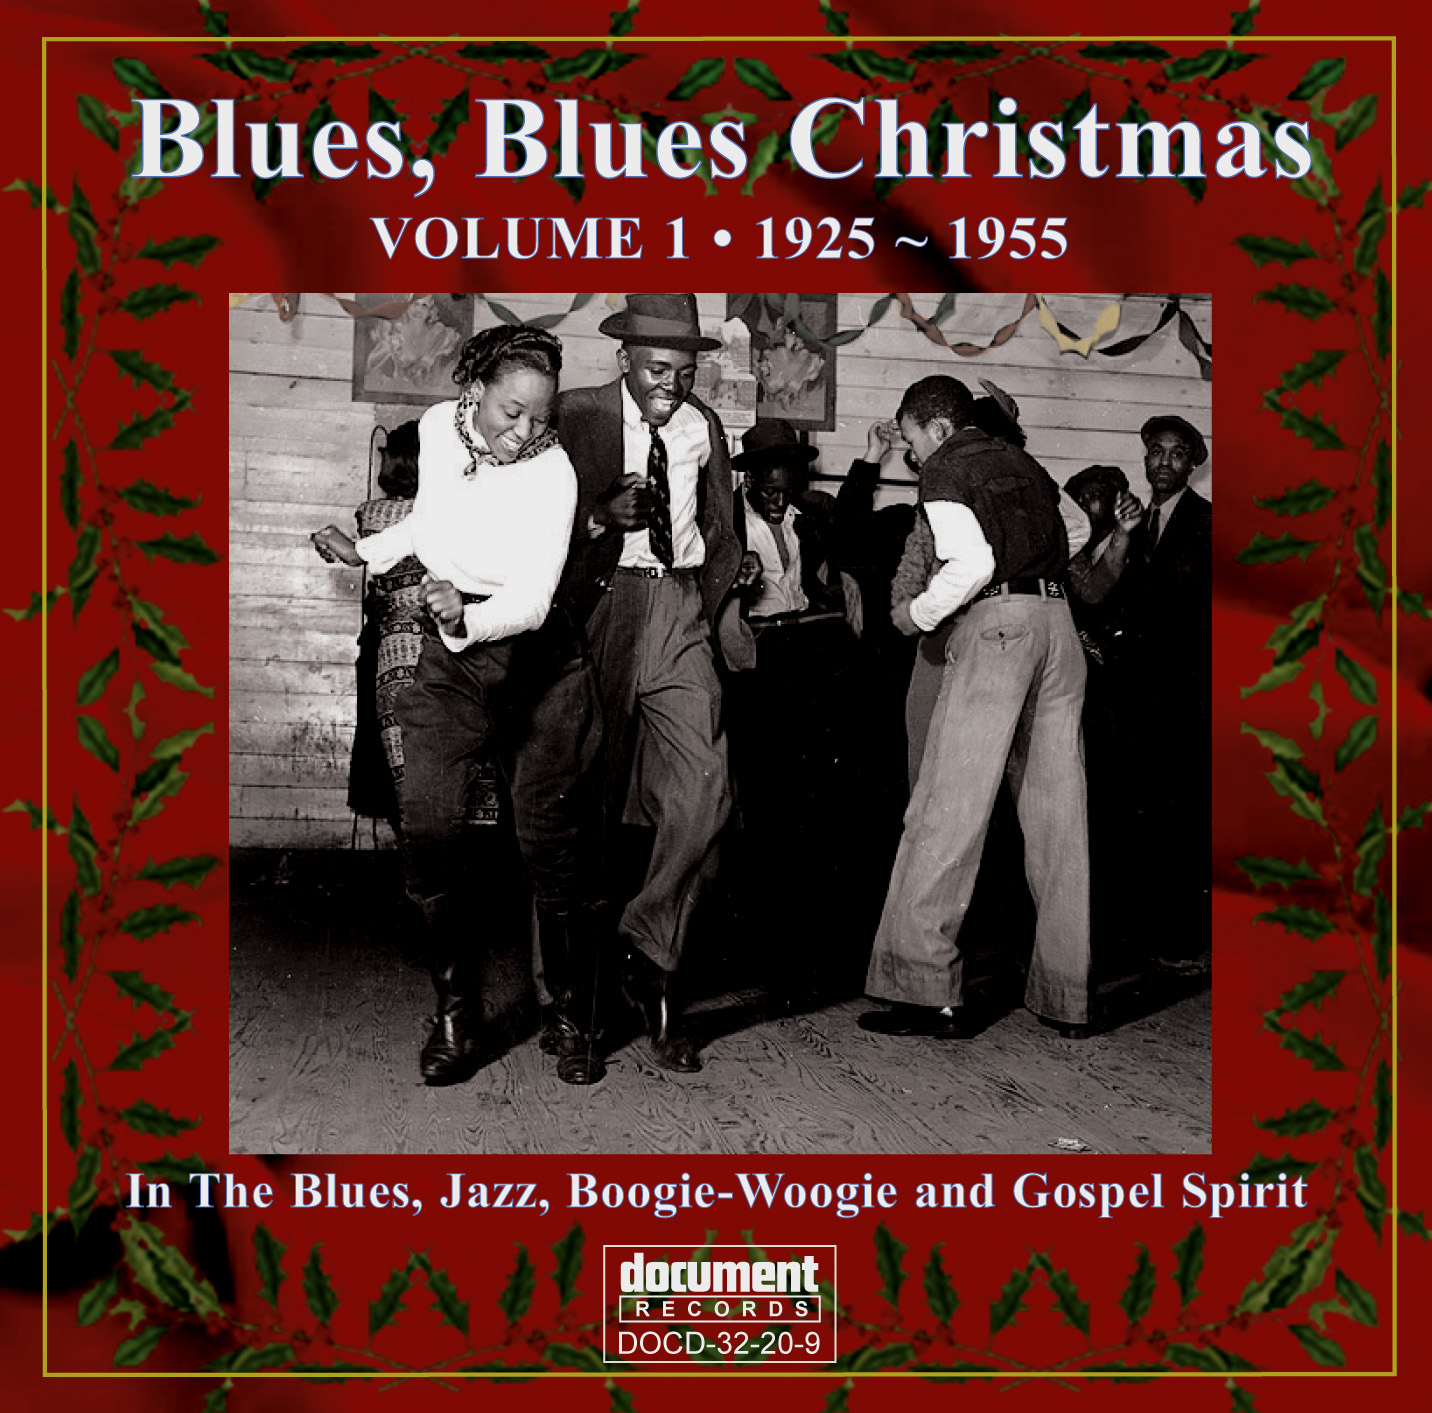 Blues, Blues Christmas (1925-1955) - The Document Records Store